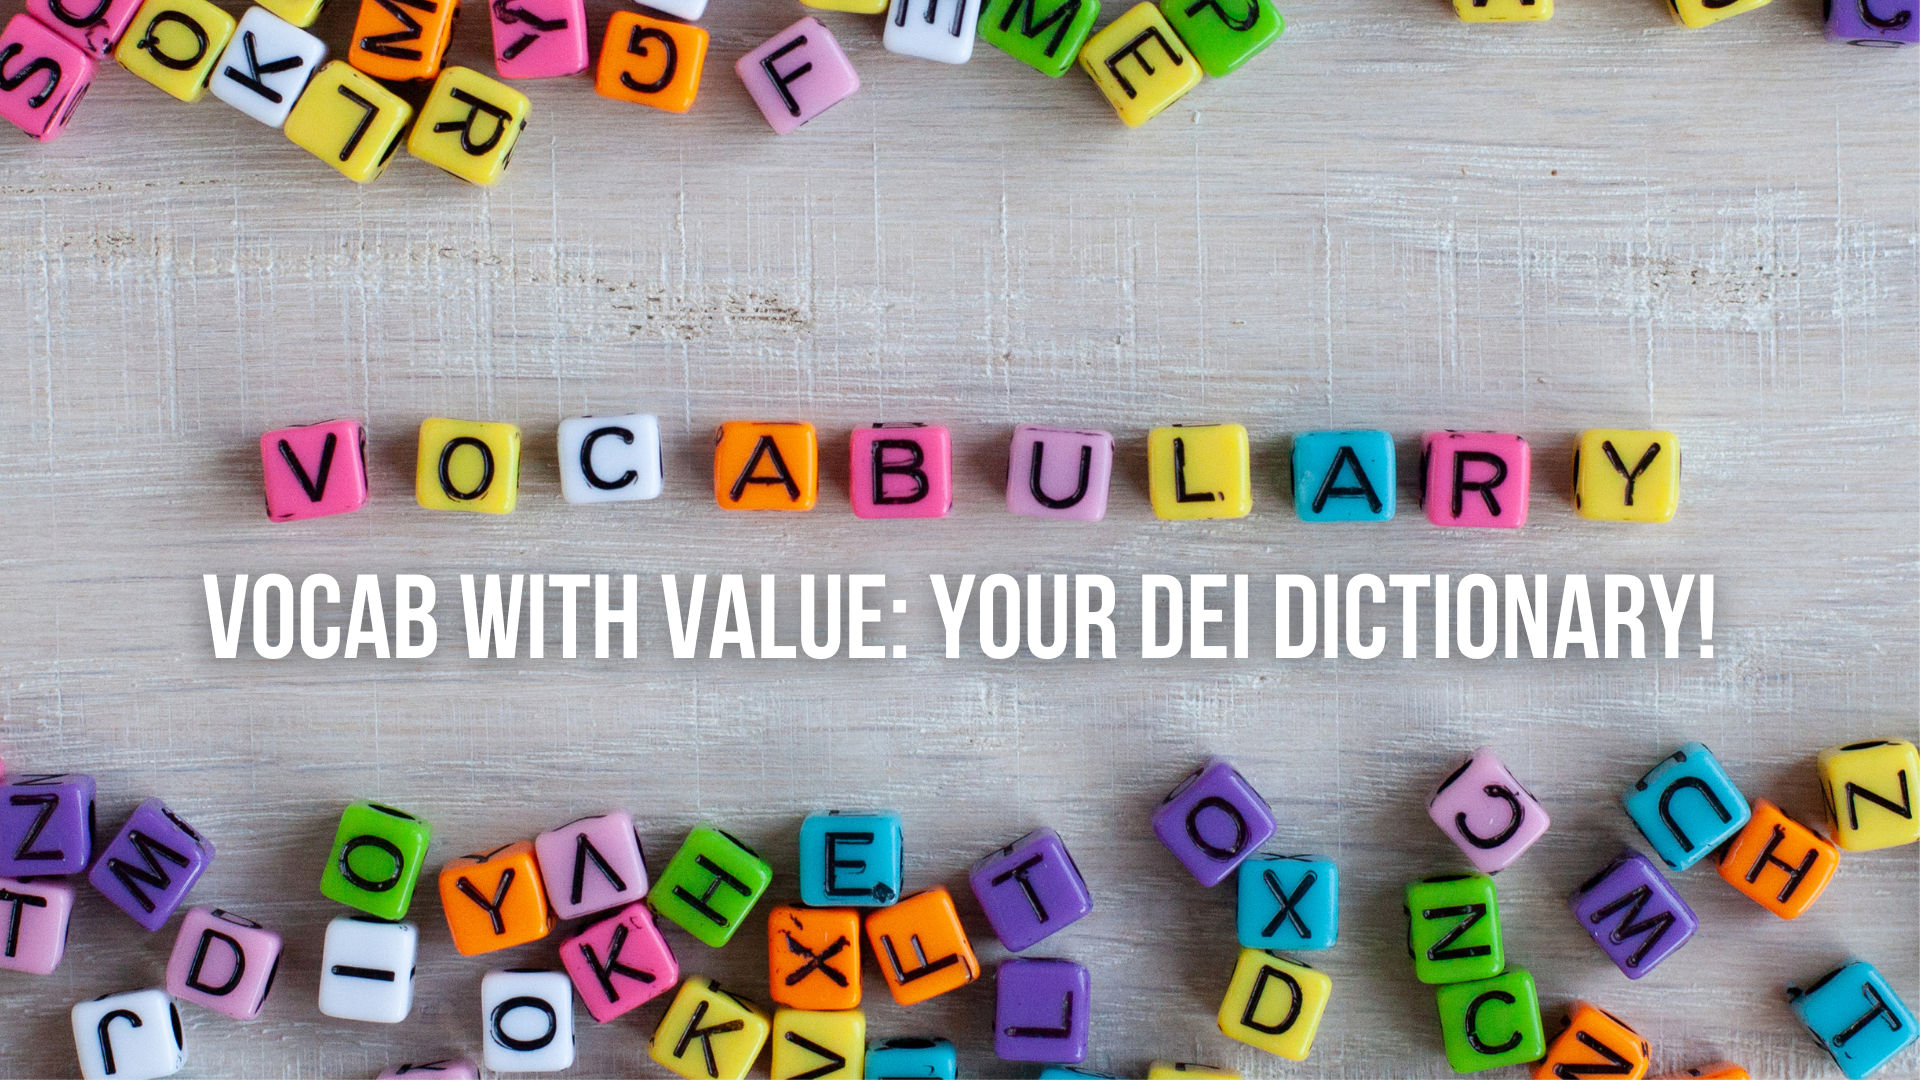 [Zoom Meeting] Vocab with Value: Your DEI Dictionary!